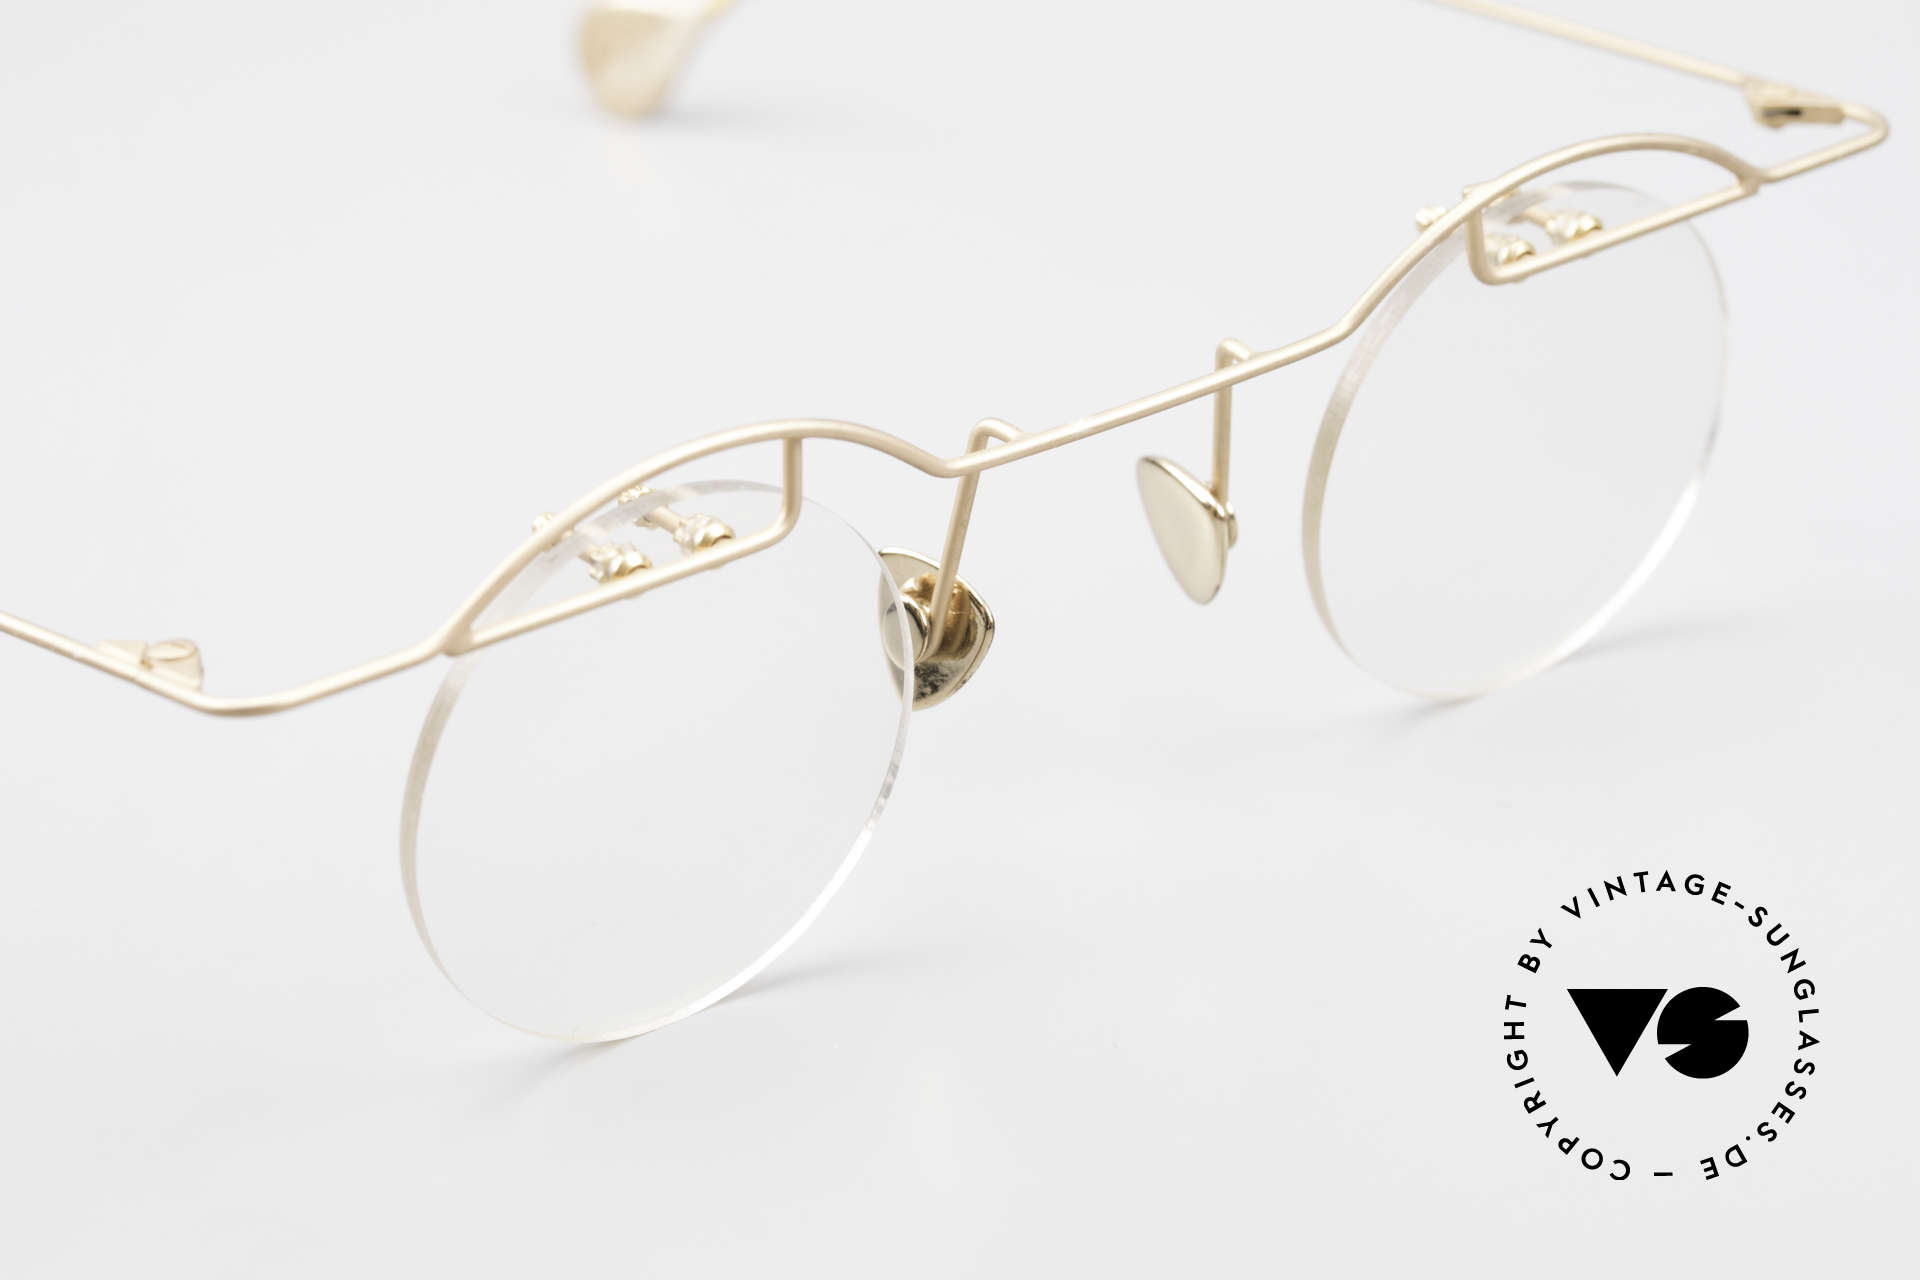 Paul Chiol 02 Bauhaus Eyeglasses Rimless, Size: small, Made for Men and Women